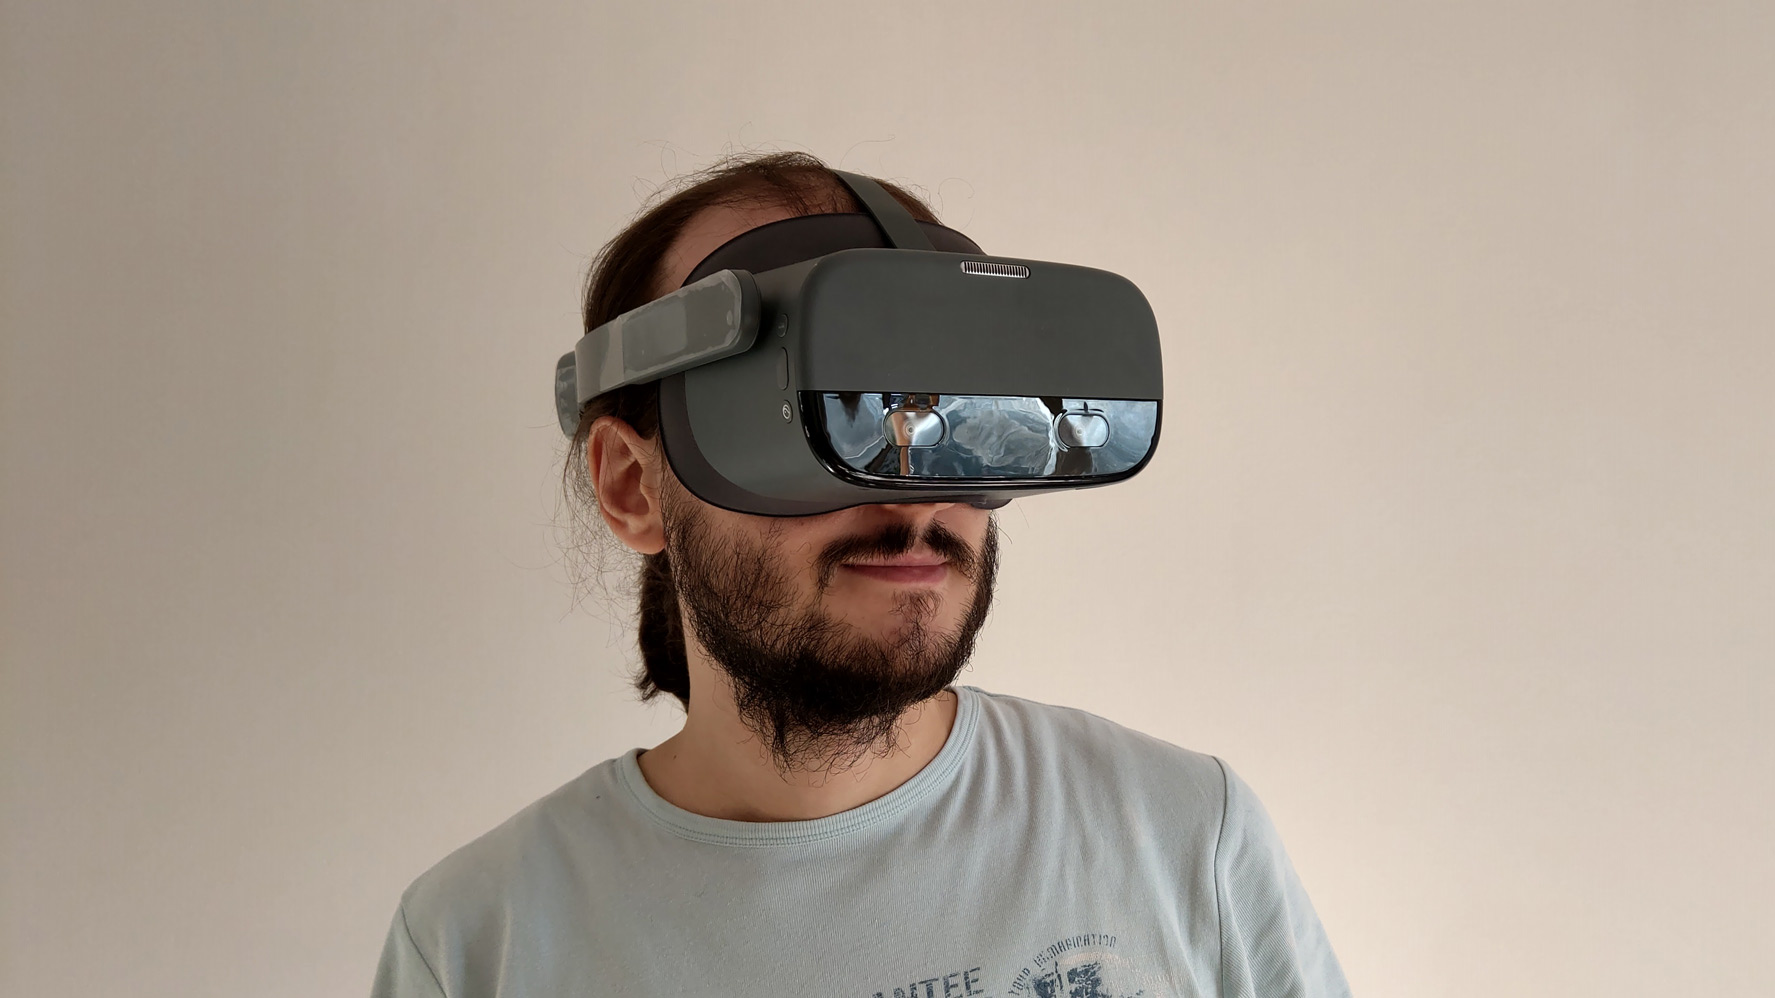 Pico Neo 2 Eye review: the new best enterprise standalone headset